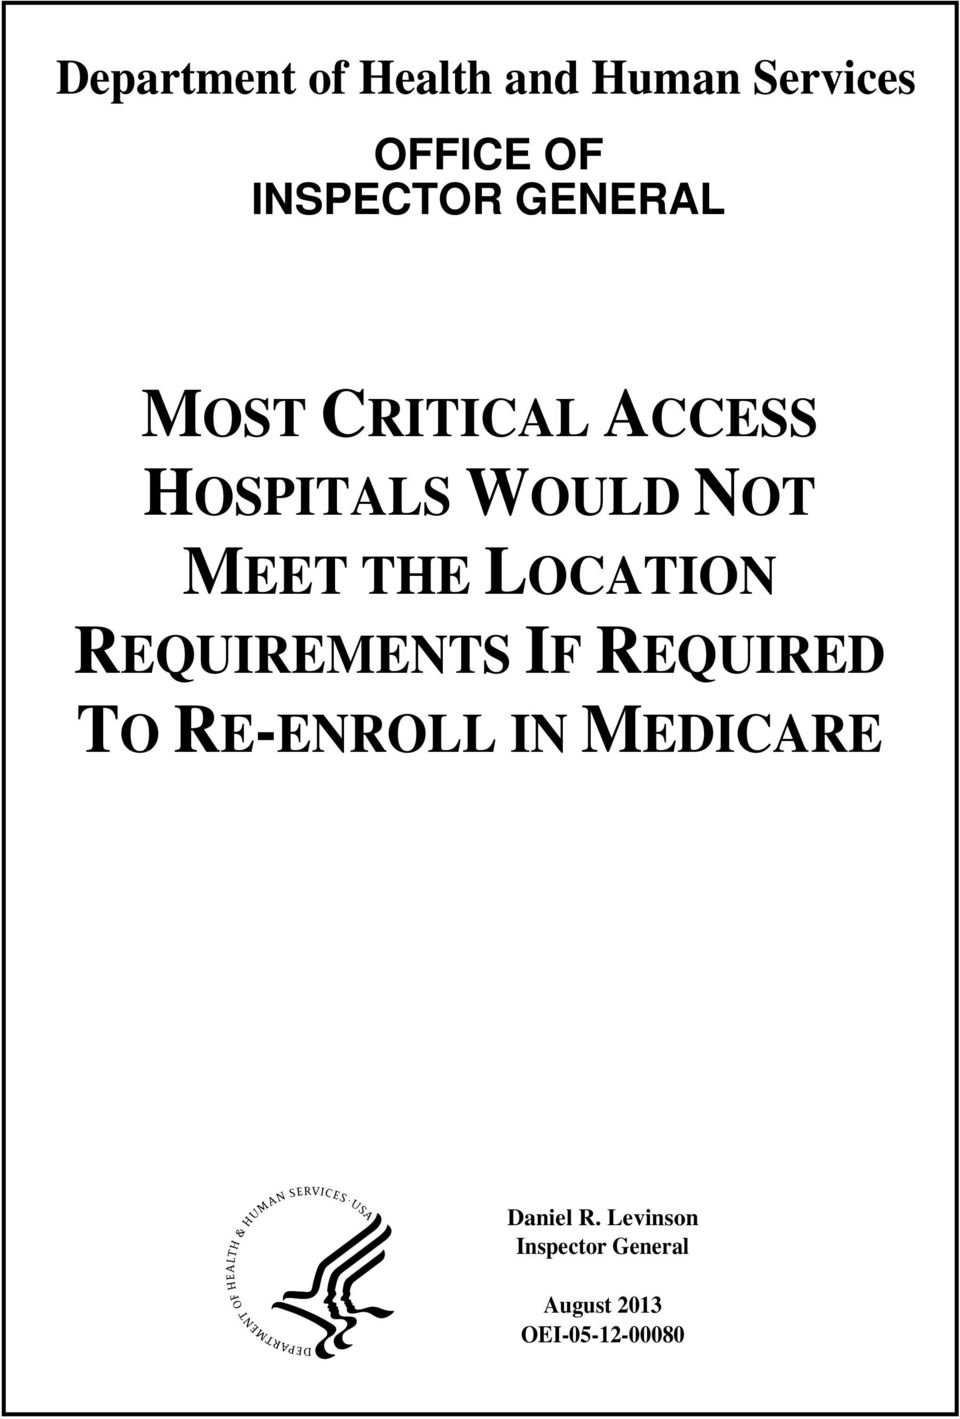 LOCATION REQUIREMENTS IF REQUIRED TO RE-ENROLL IN MEDICARE